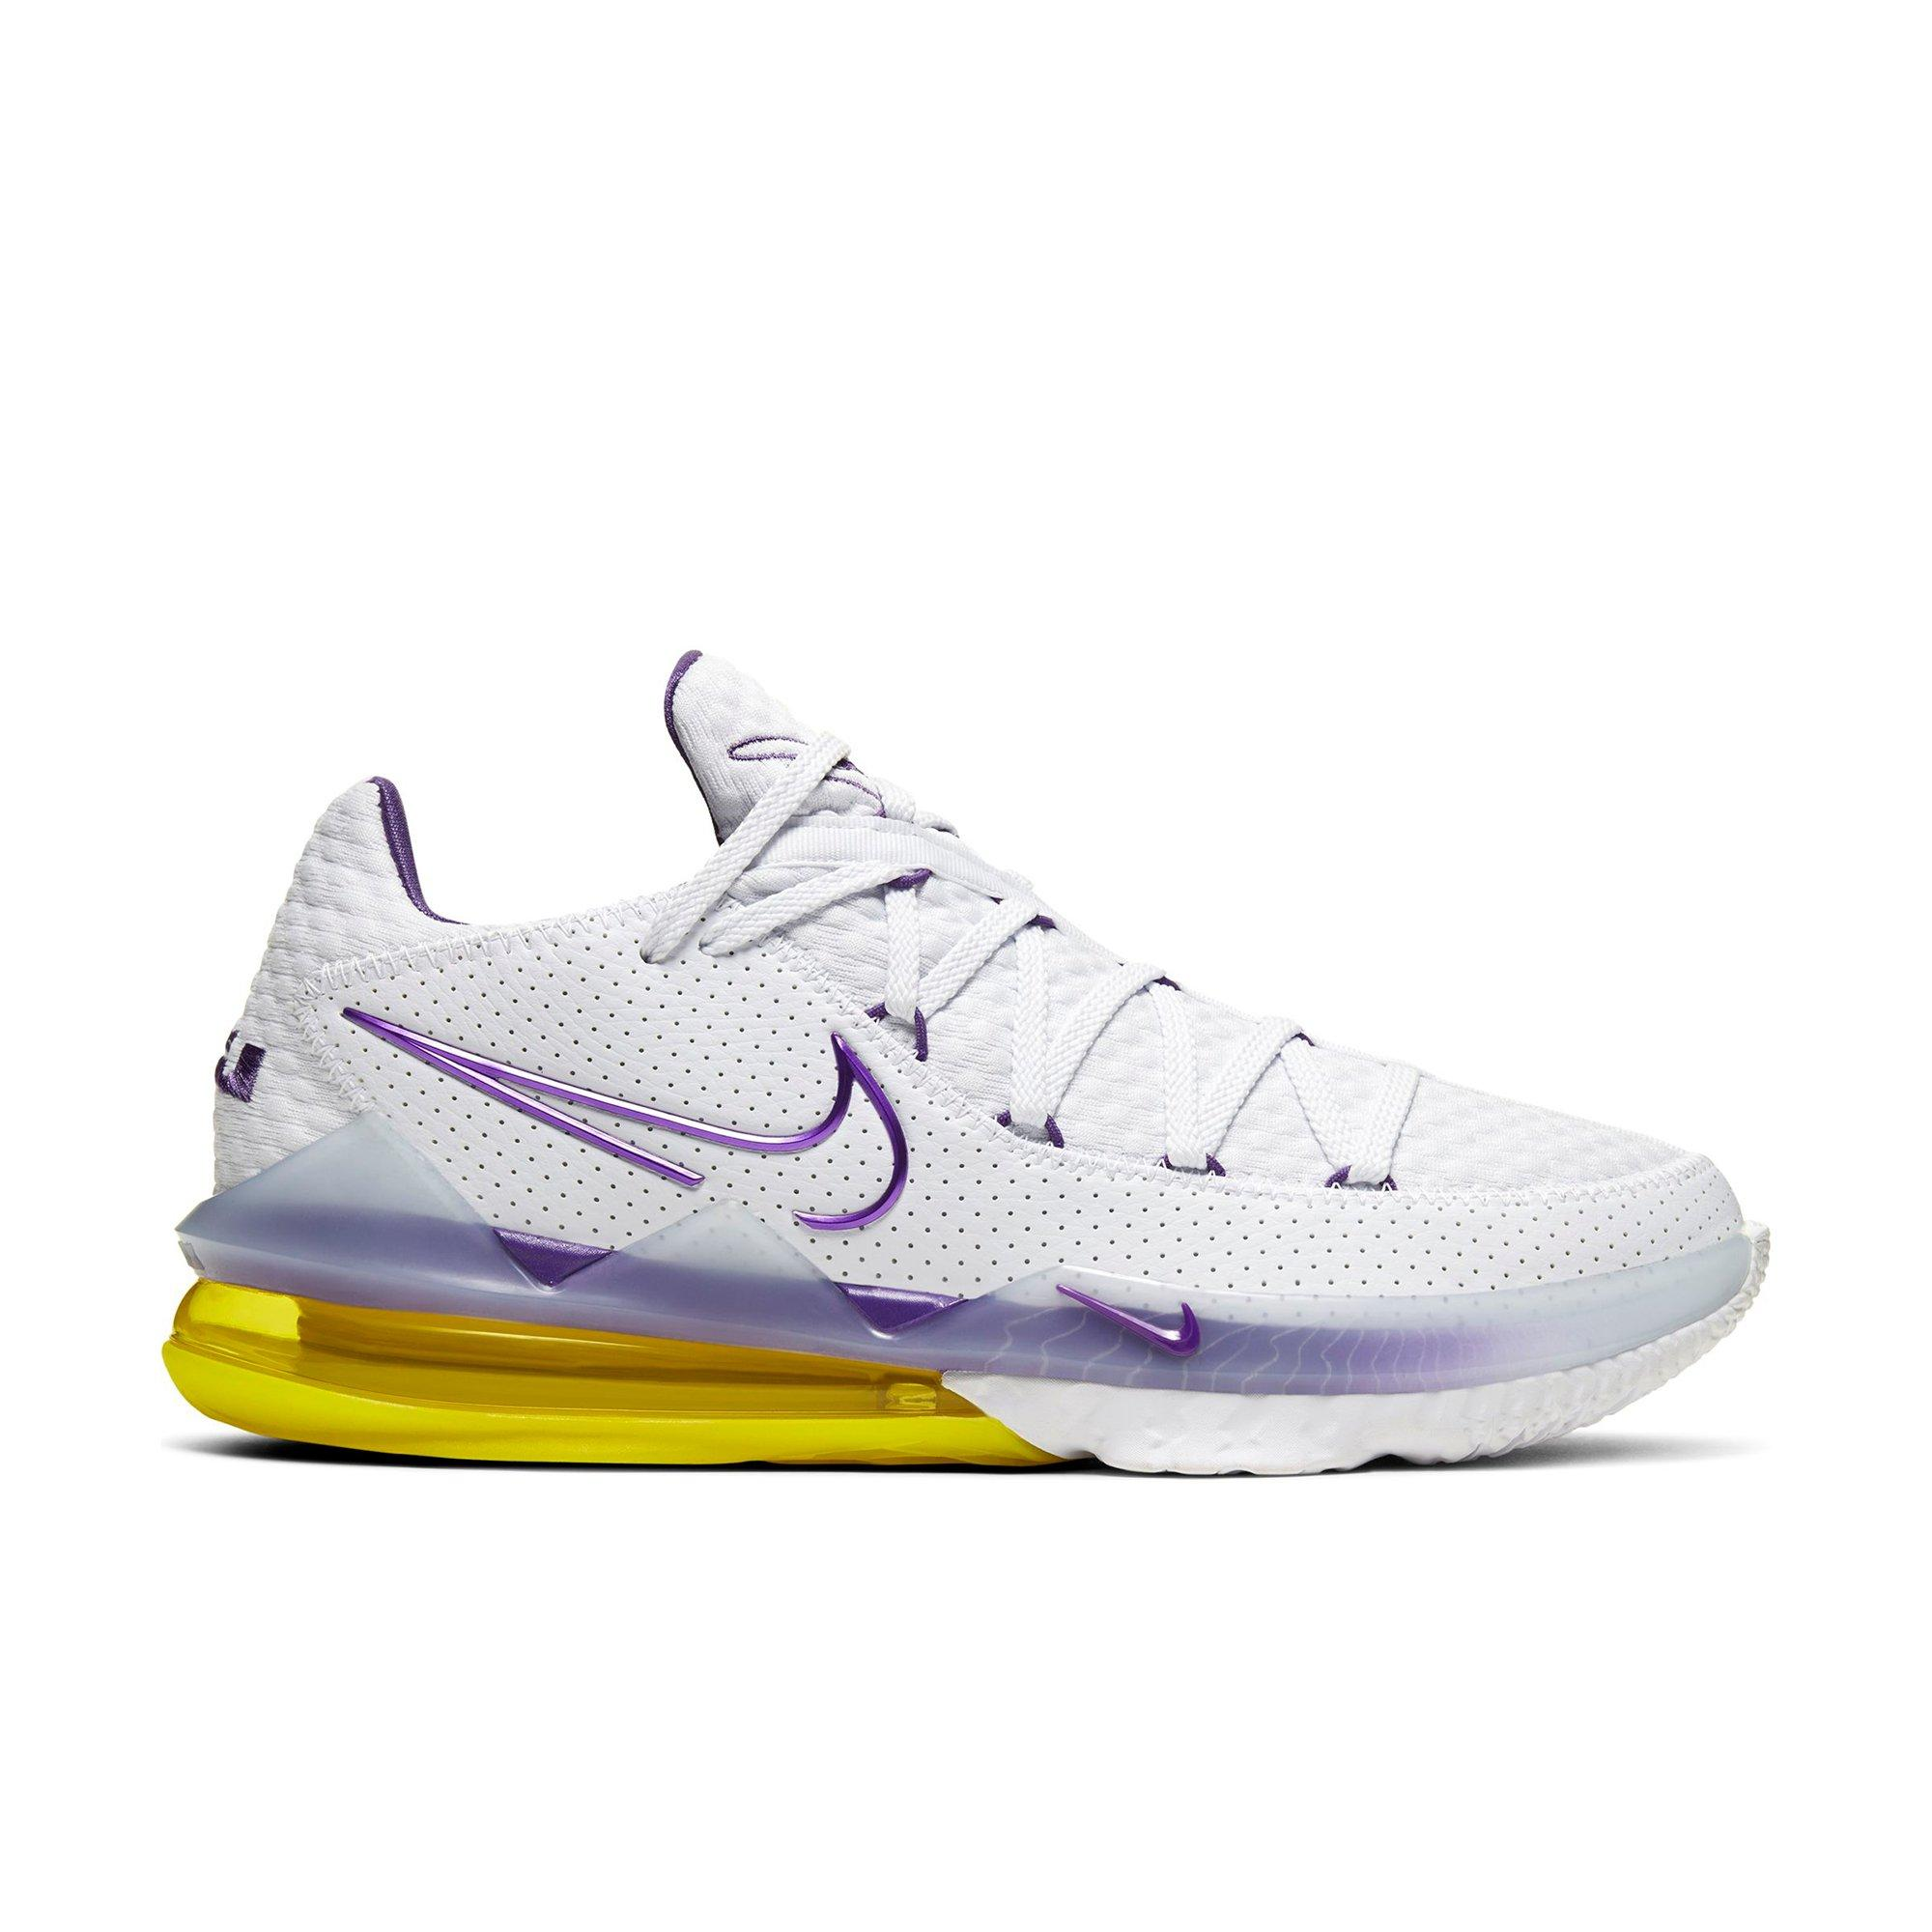 Casarse Funeral chico  Nike LeBron 17 Low